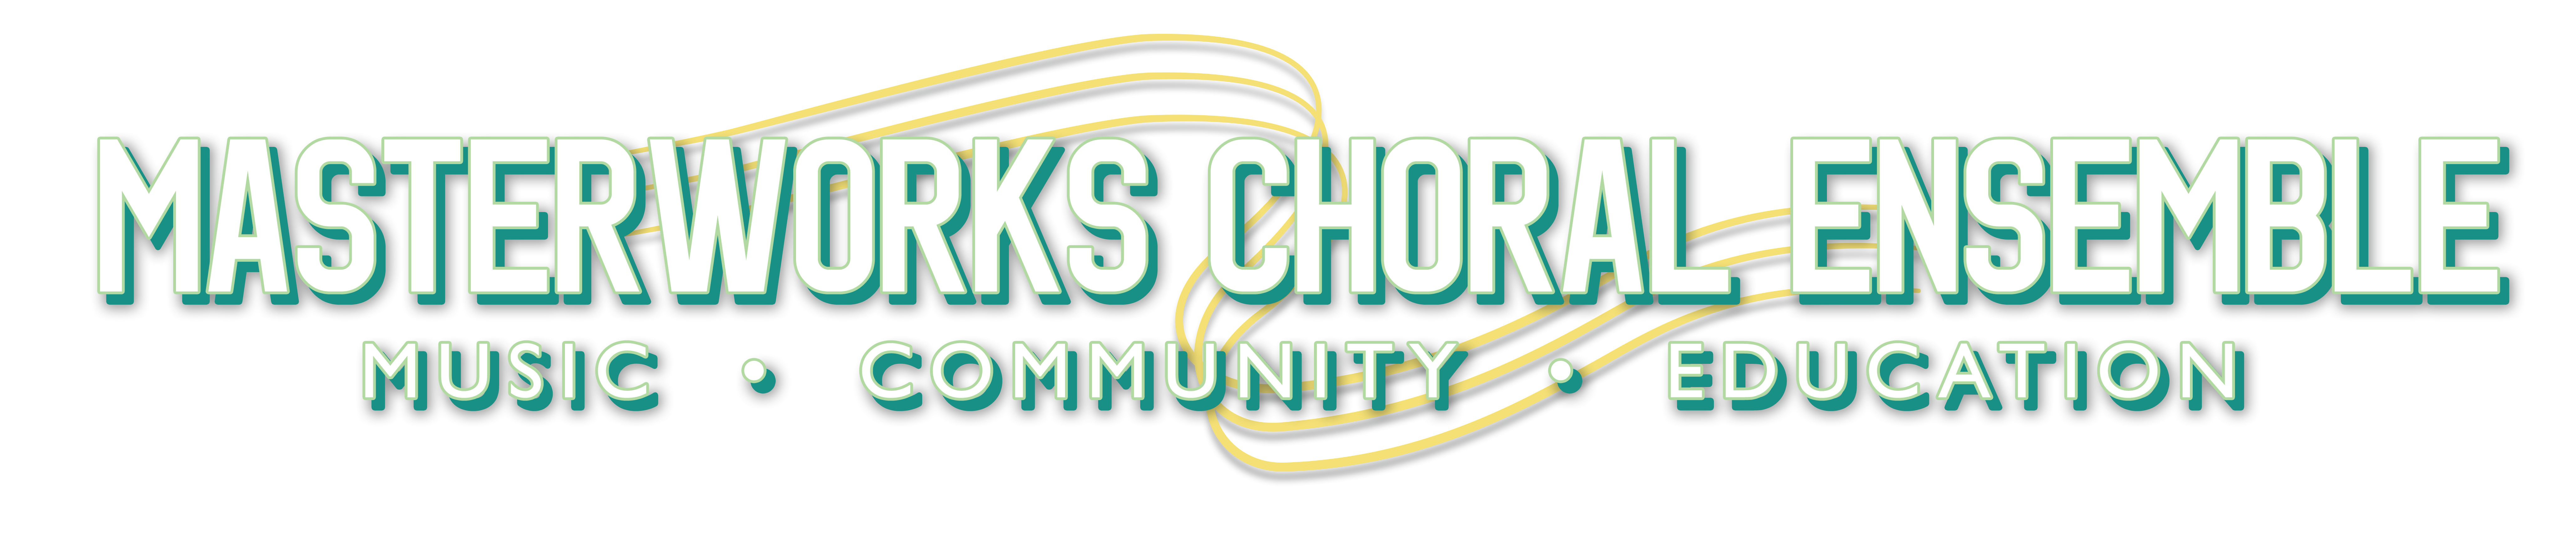 Mission and Non-Discrimination Policy – Masterworks Choral